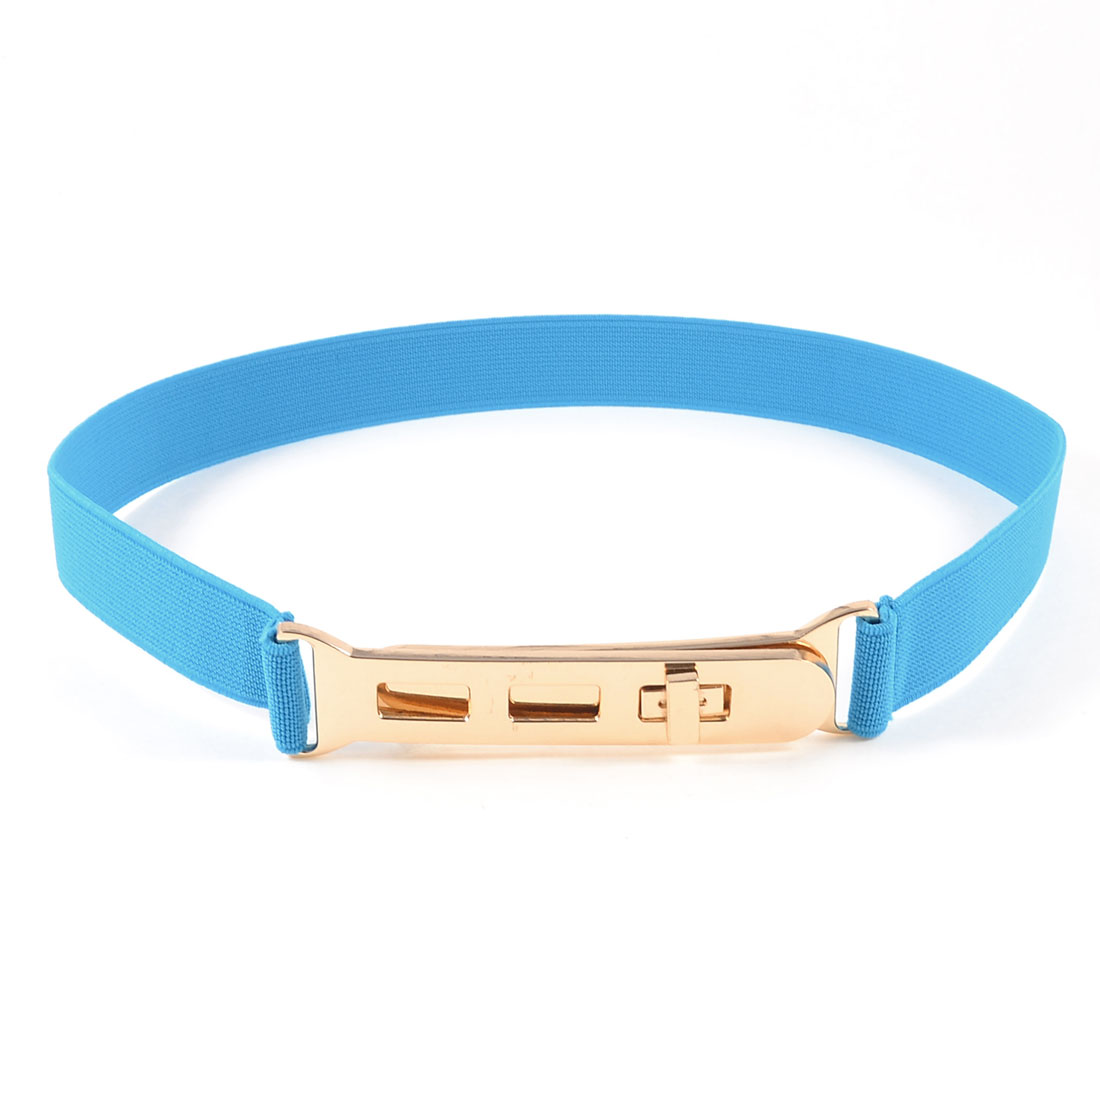 Sky Blue Copper Tone Stretchy Band Metal Buckle Cinch Belt